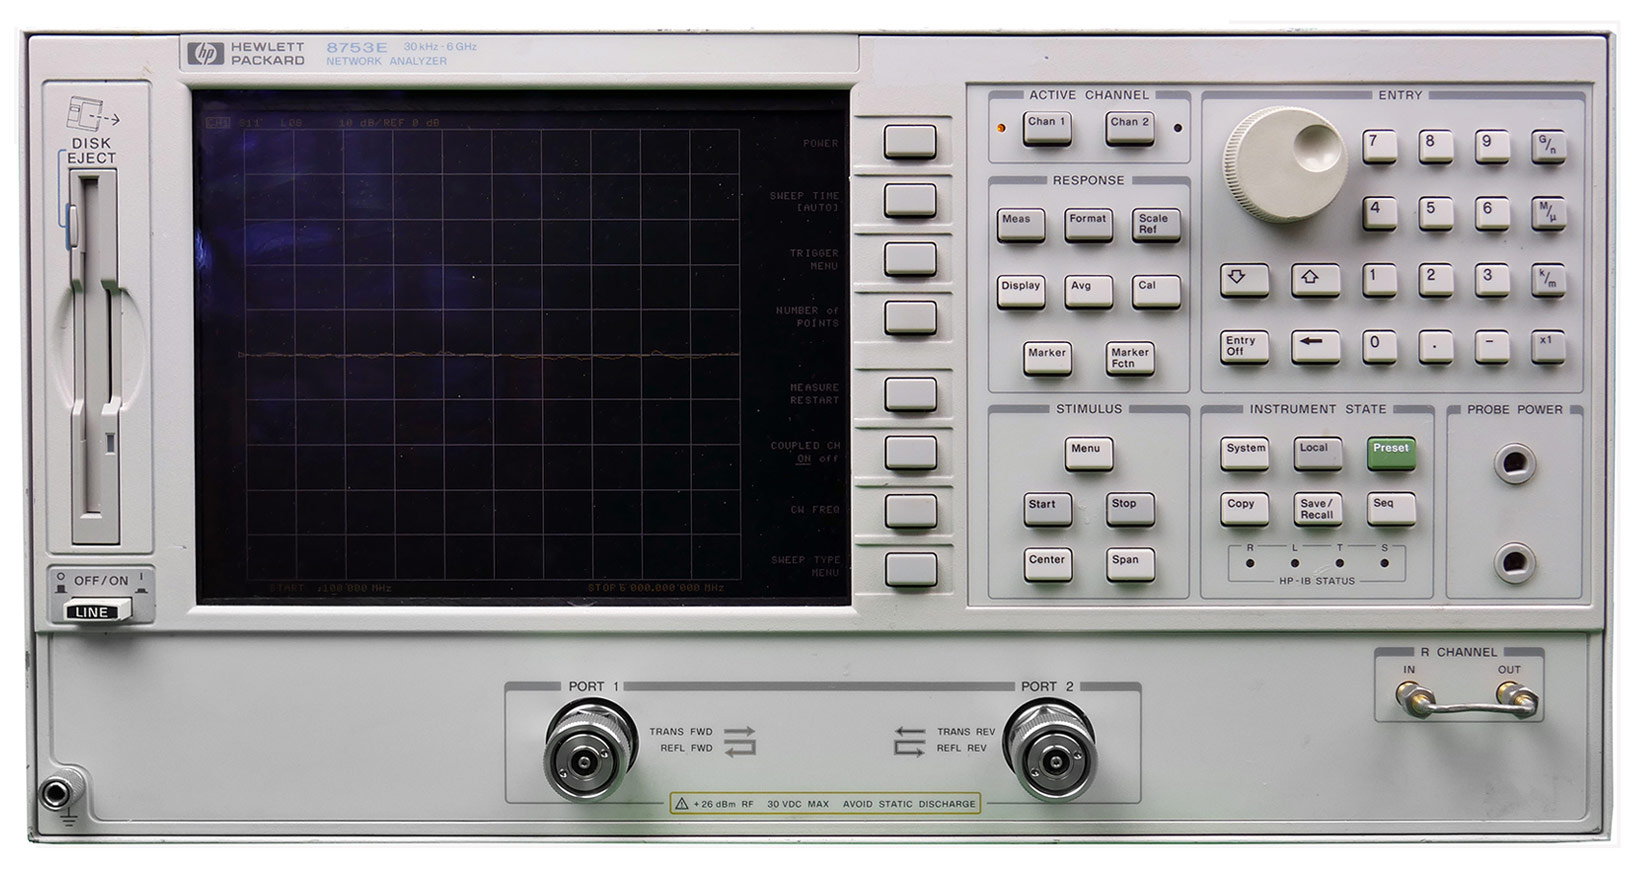 Rent, lease, or rent to own 8753ES S-Parameter Network Analyzer 30 kHz - 3 GHz / 6 GHz